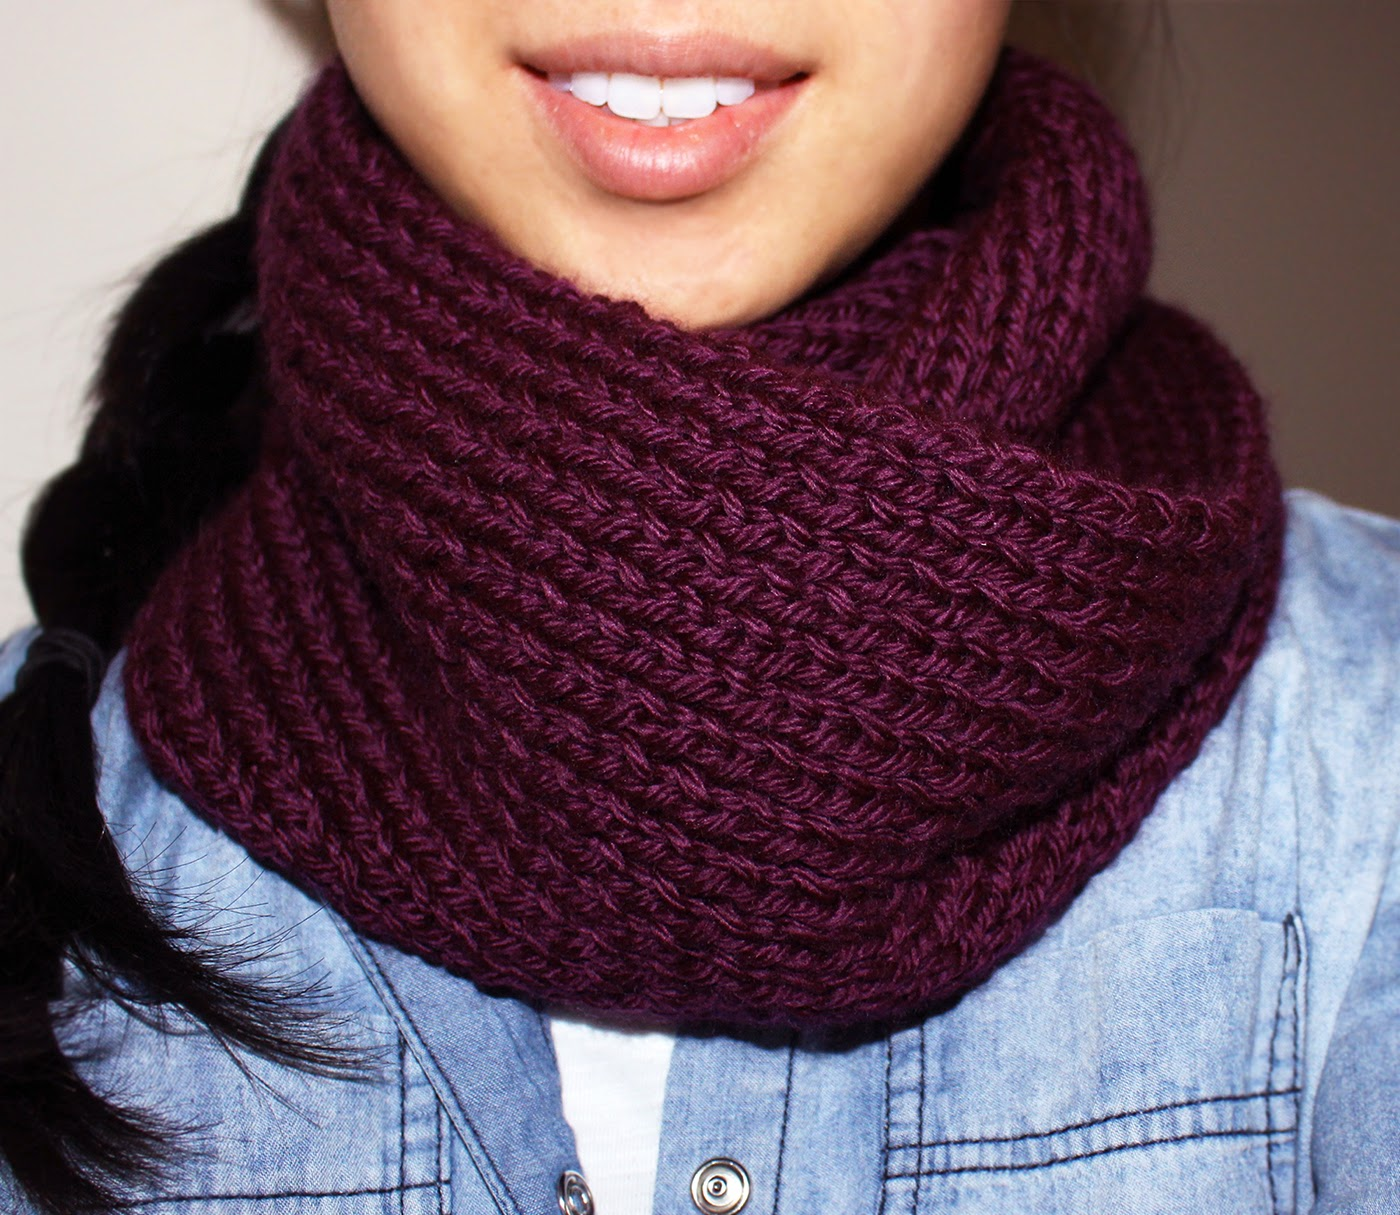 Free Knitting Patterns For Scarves For Beginners : Purllin: Acai Infinity Circle Scarf [free knitting pattern]